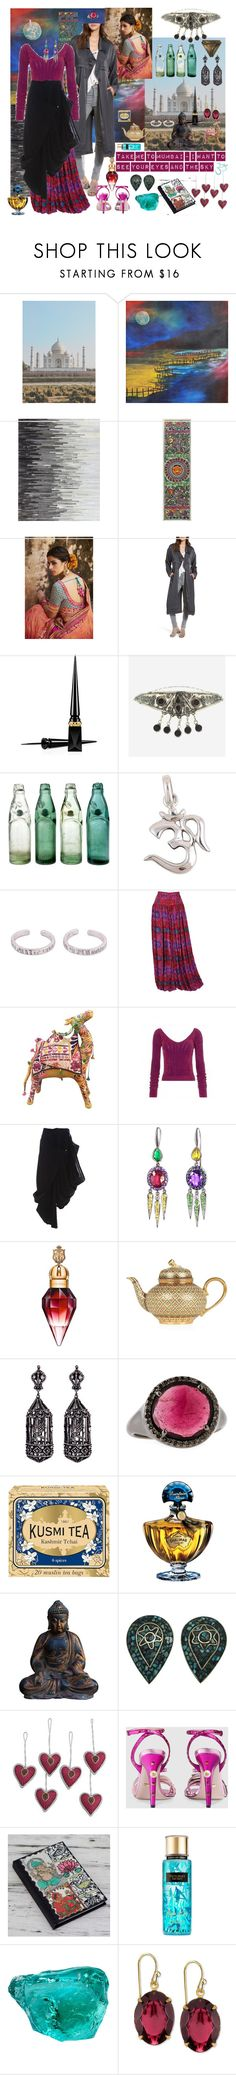 """Take me to Mumbai!!"" by billiej-712 ❤ liked on Polyvore featuring NOVICA, Leith, Christian Louboutin, Rock 'N Rose, Emanuel Ungaro, Kansai Yamamoto, Holly Dyment, Amrapali, Bavna and Kusmi Tea"